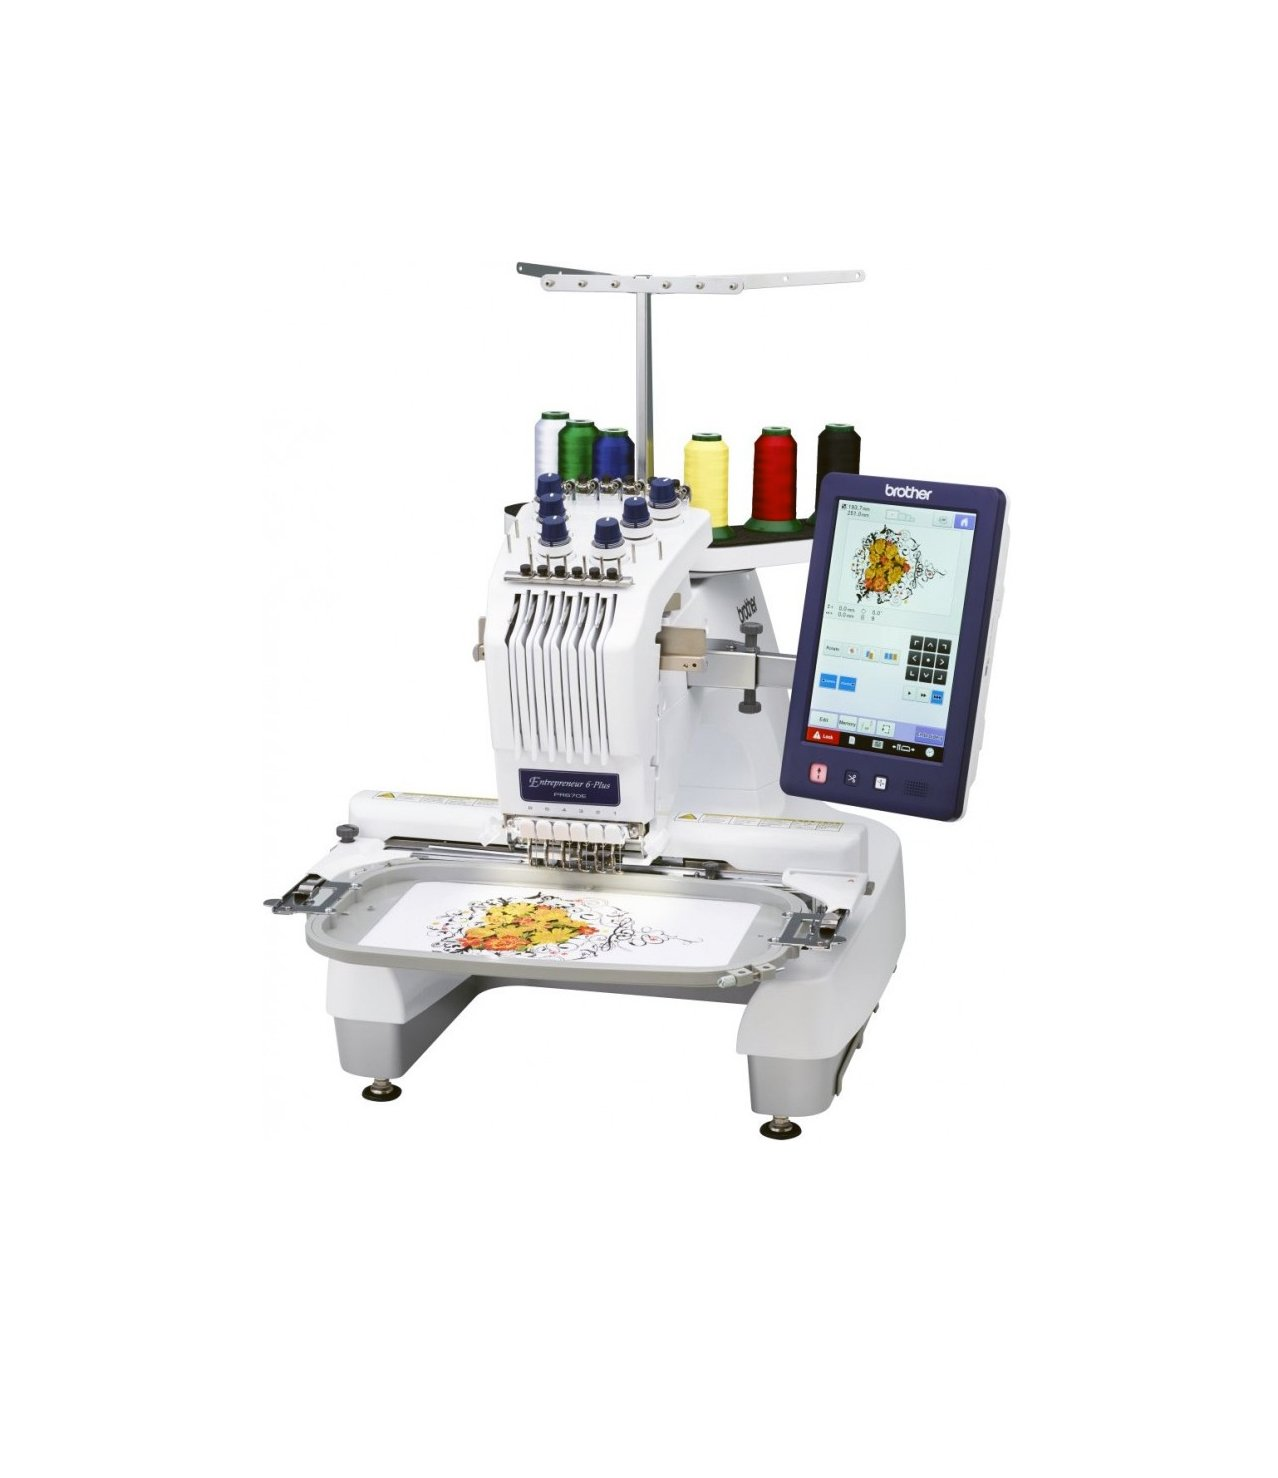 PR670EC Multi-needle Embroidery Machine Brother Entrepreneur Industrial Tajima Stitches Designs In-built decorative included cheap price bonus free